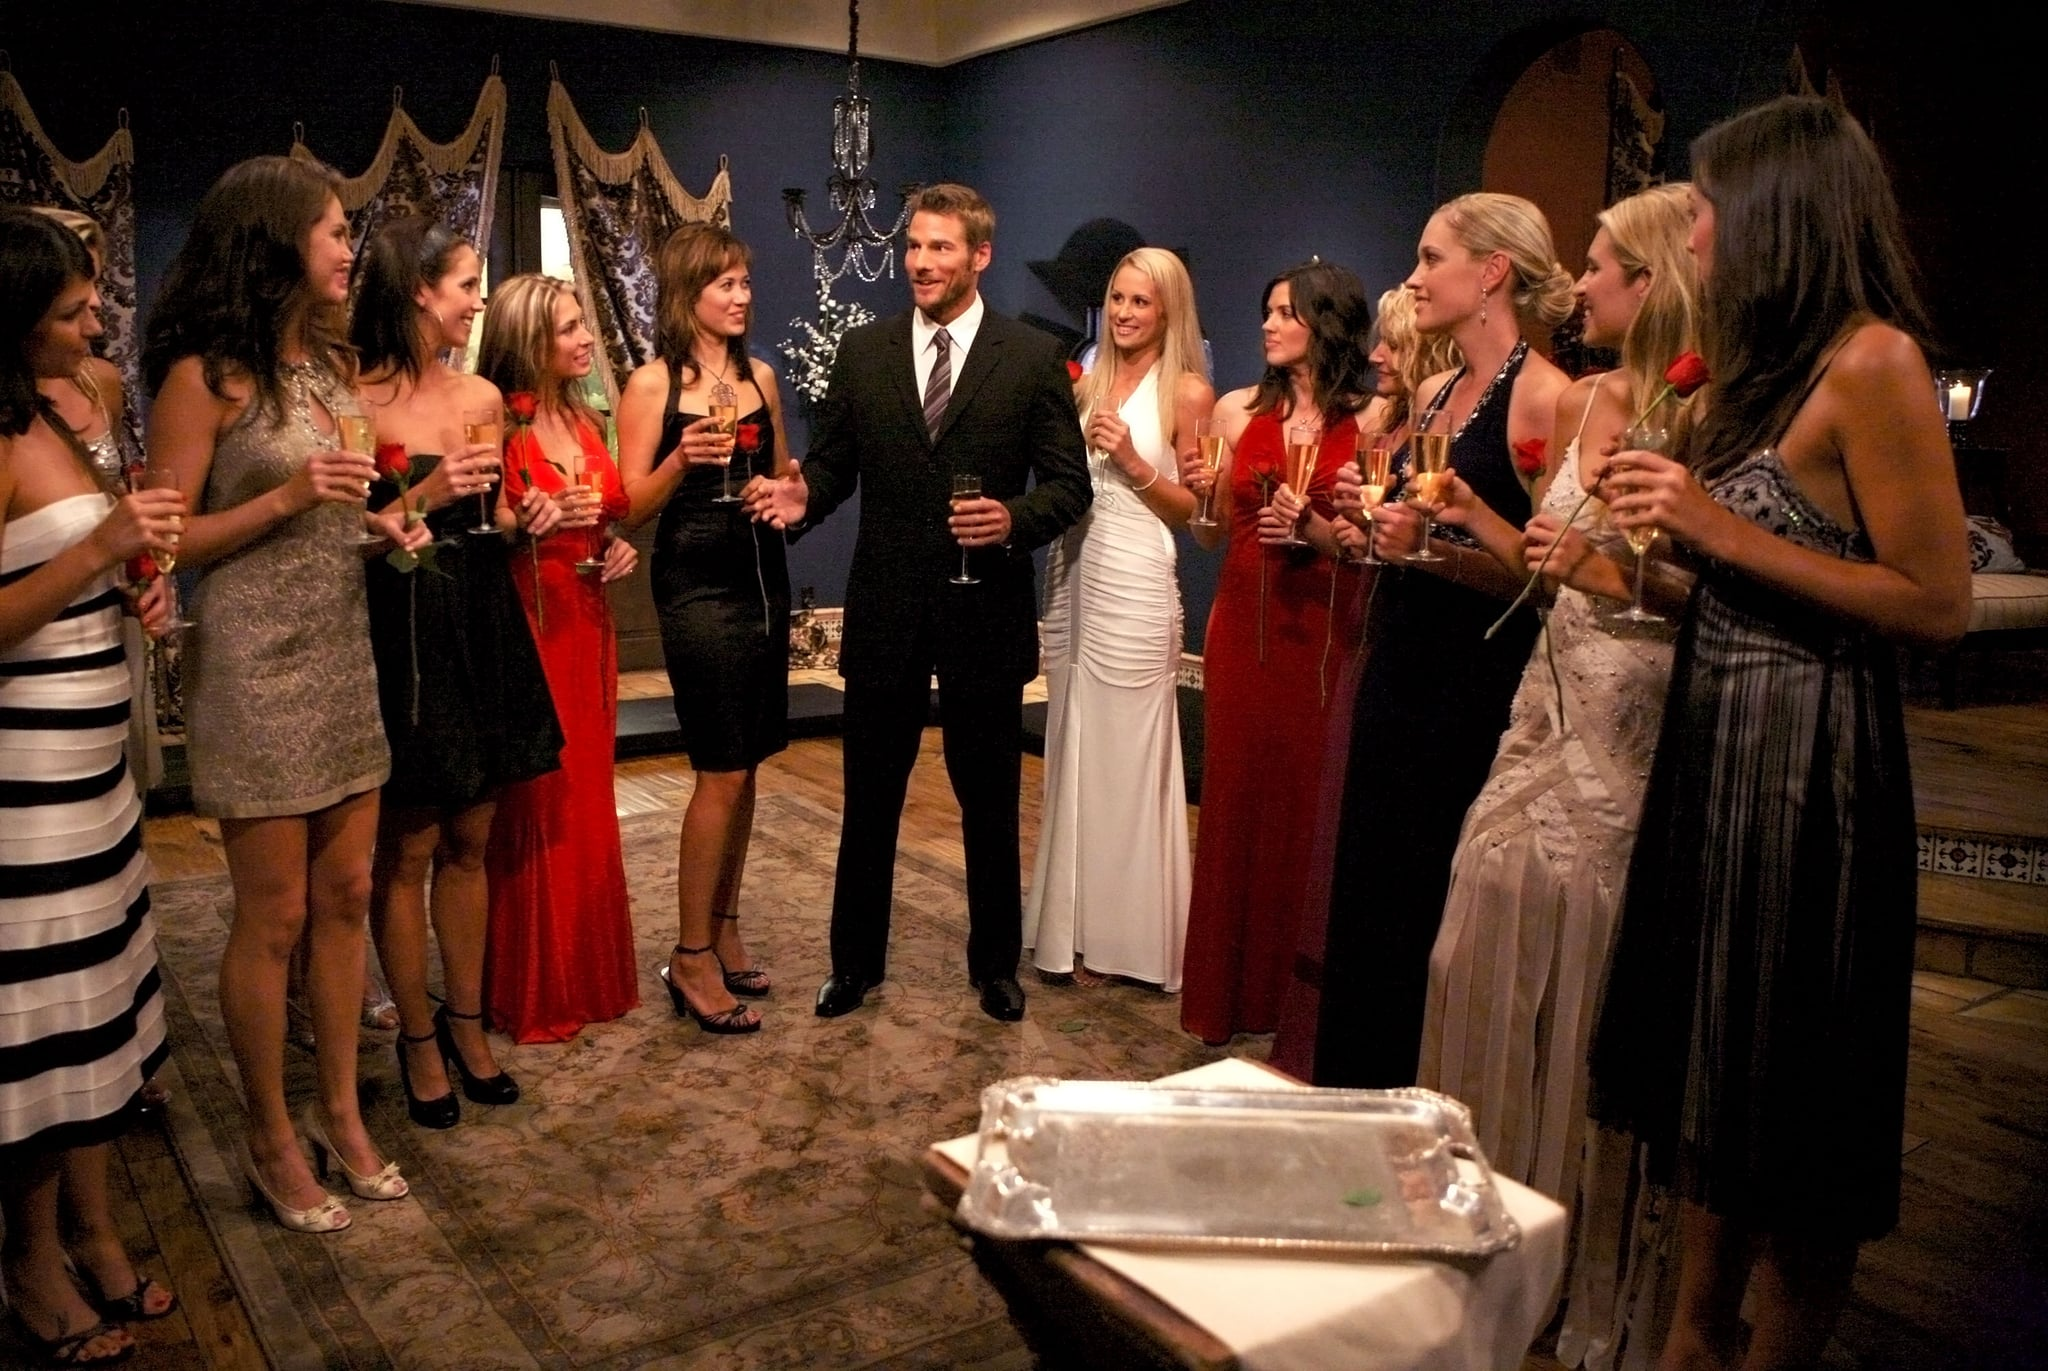 Where To Watch Old Seasons Of The Bachelor Popsugar Entertainment